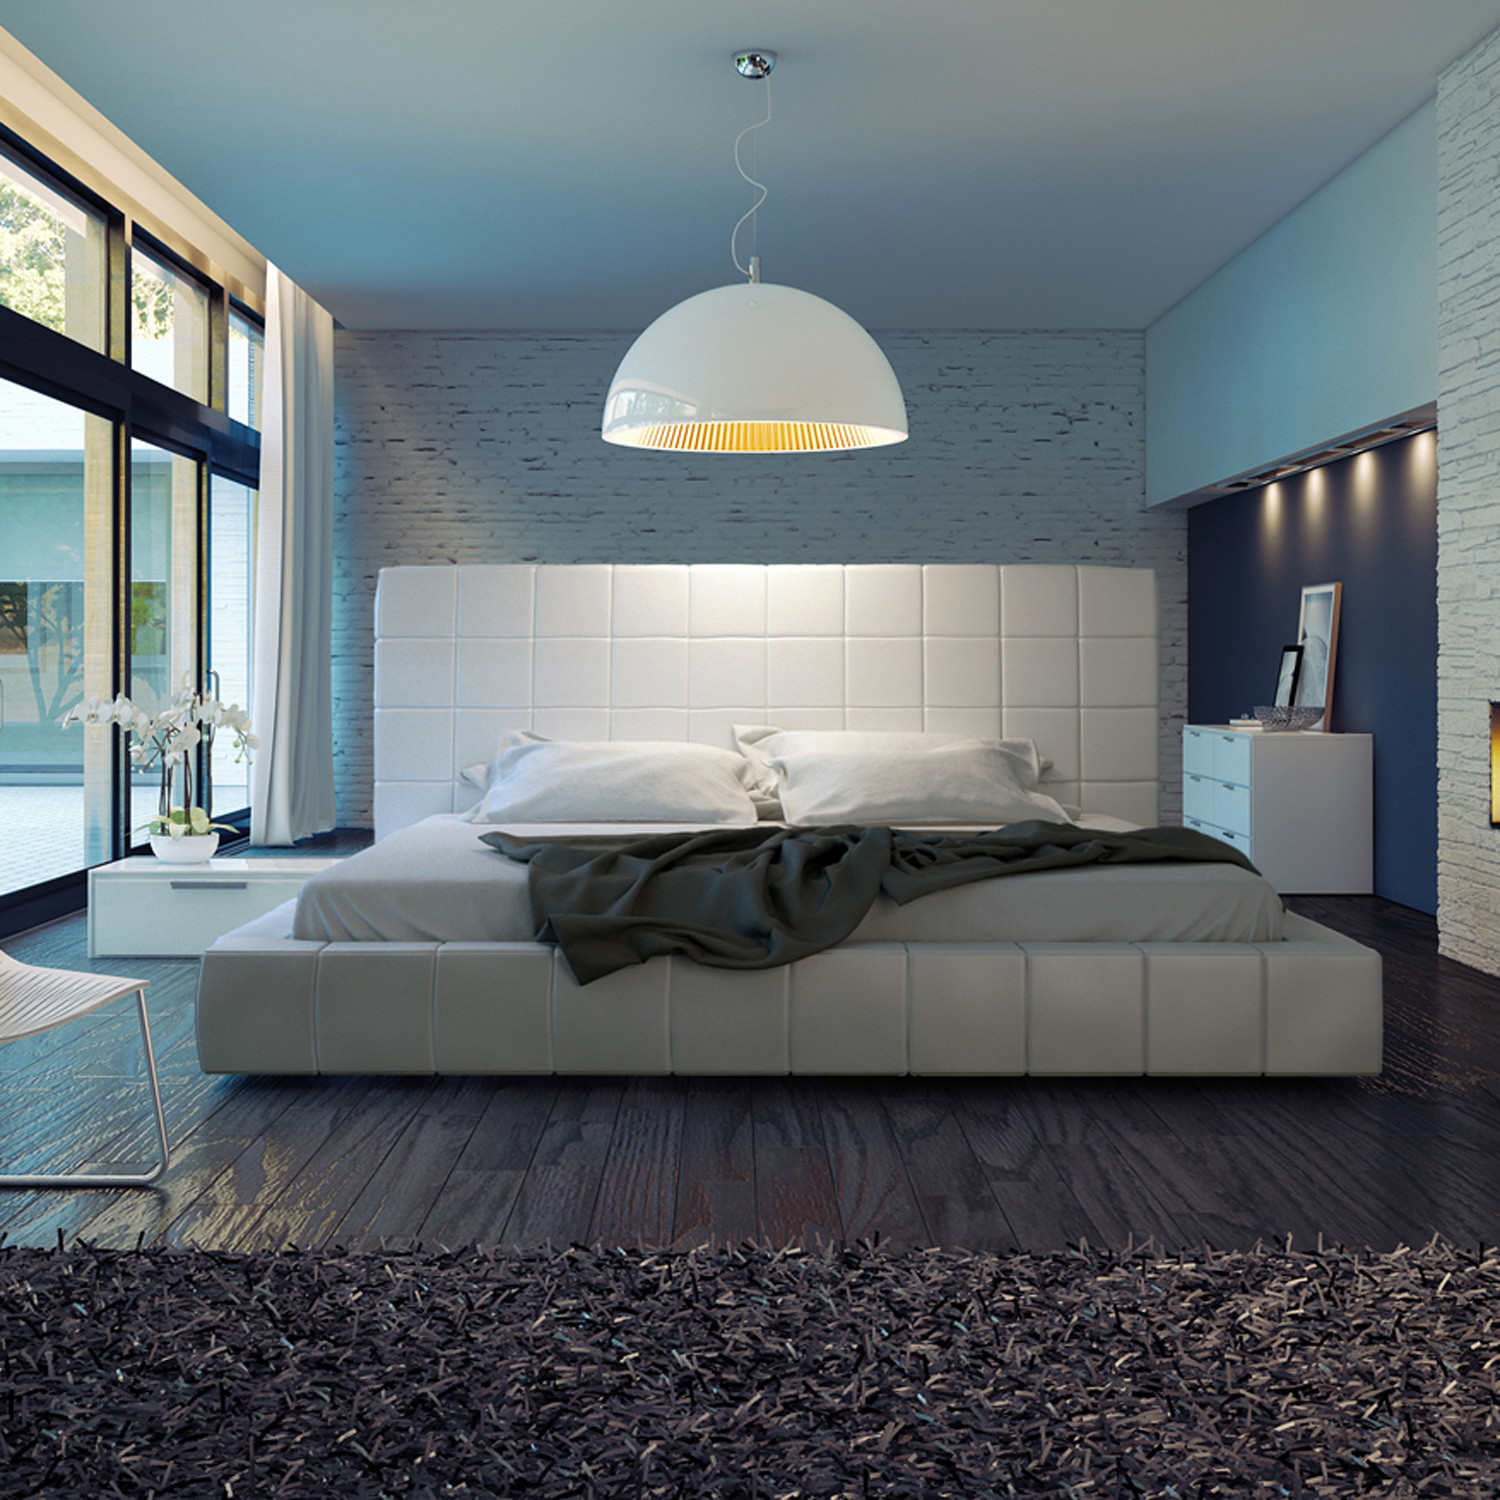 https://www.touchofmodern.com/sales/modloft-bedroom-a1508431-2a5a-4fd9-a661-62a39892e635/thompson-bed-white-leather?share_invite_token=WQ3PD6V0